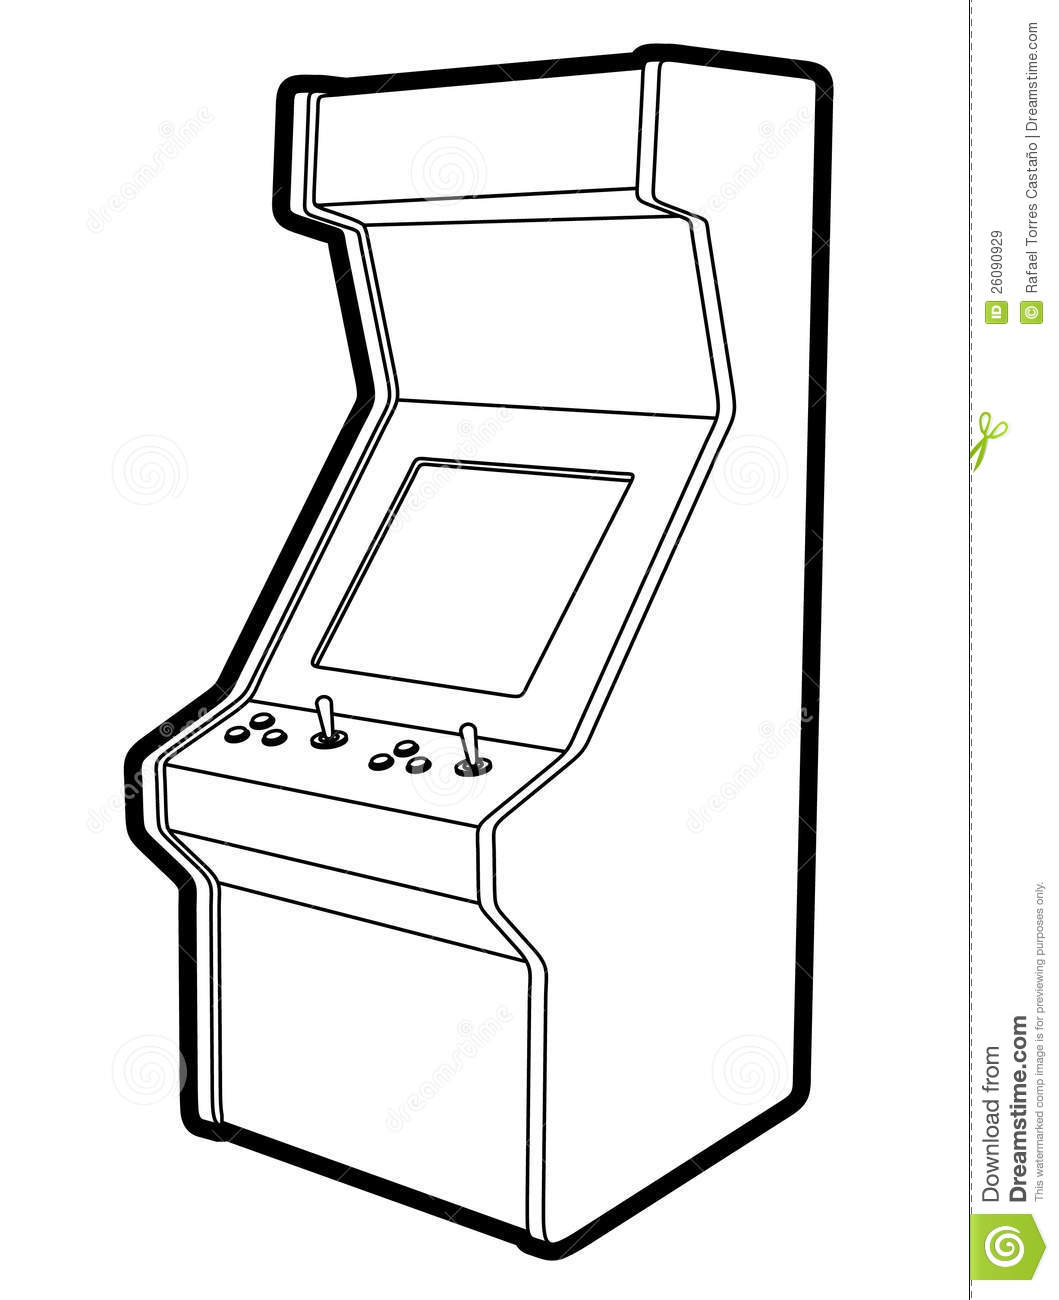 Line Drawing Game : Retro game machine stock vector illustration of